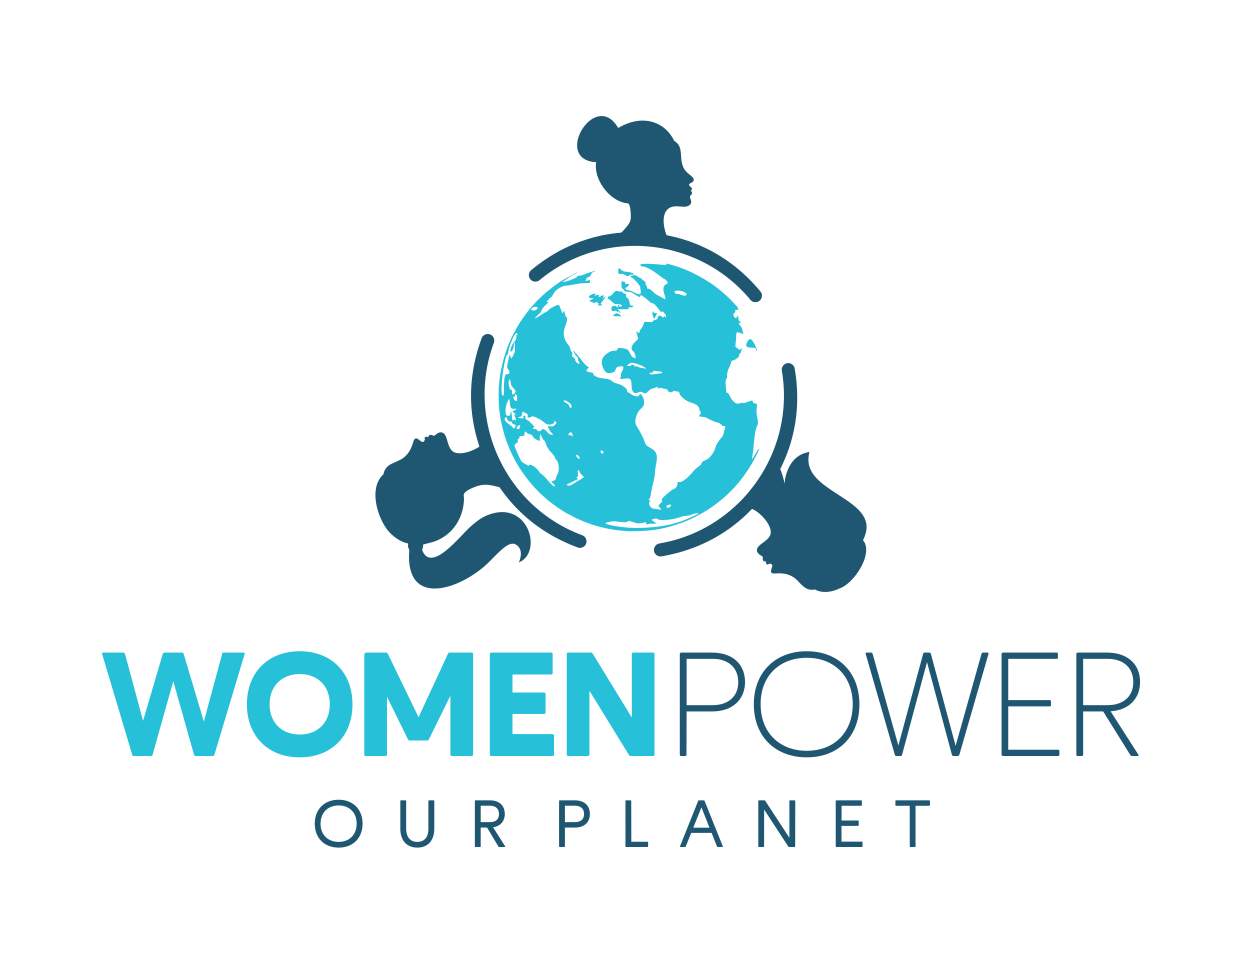 Women Power Our Planet